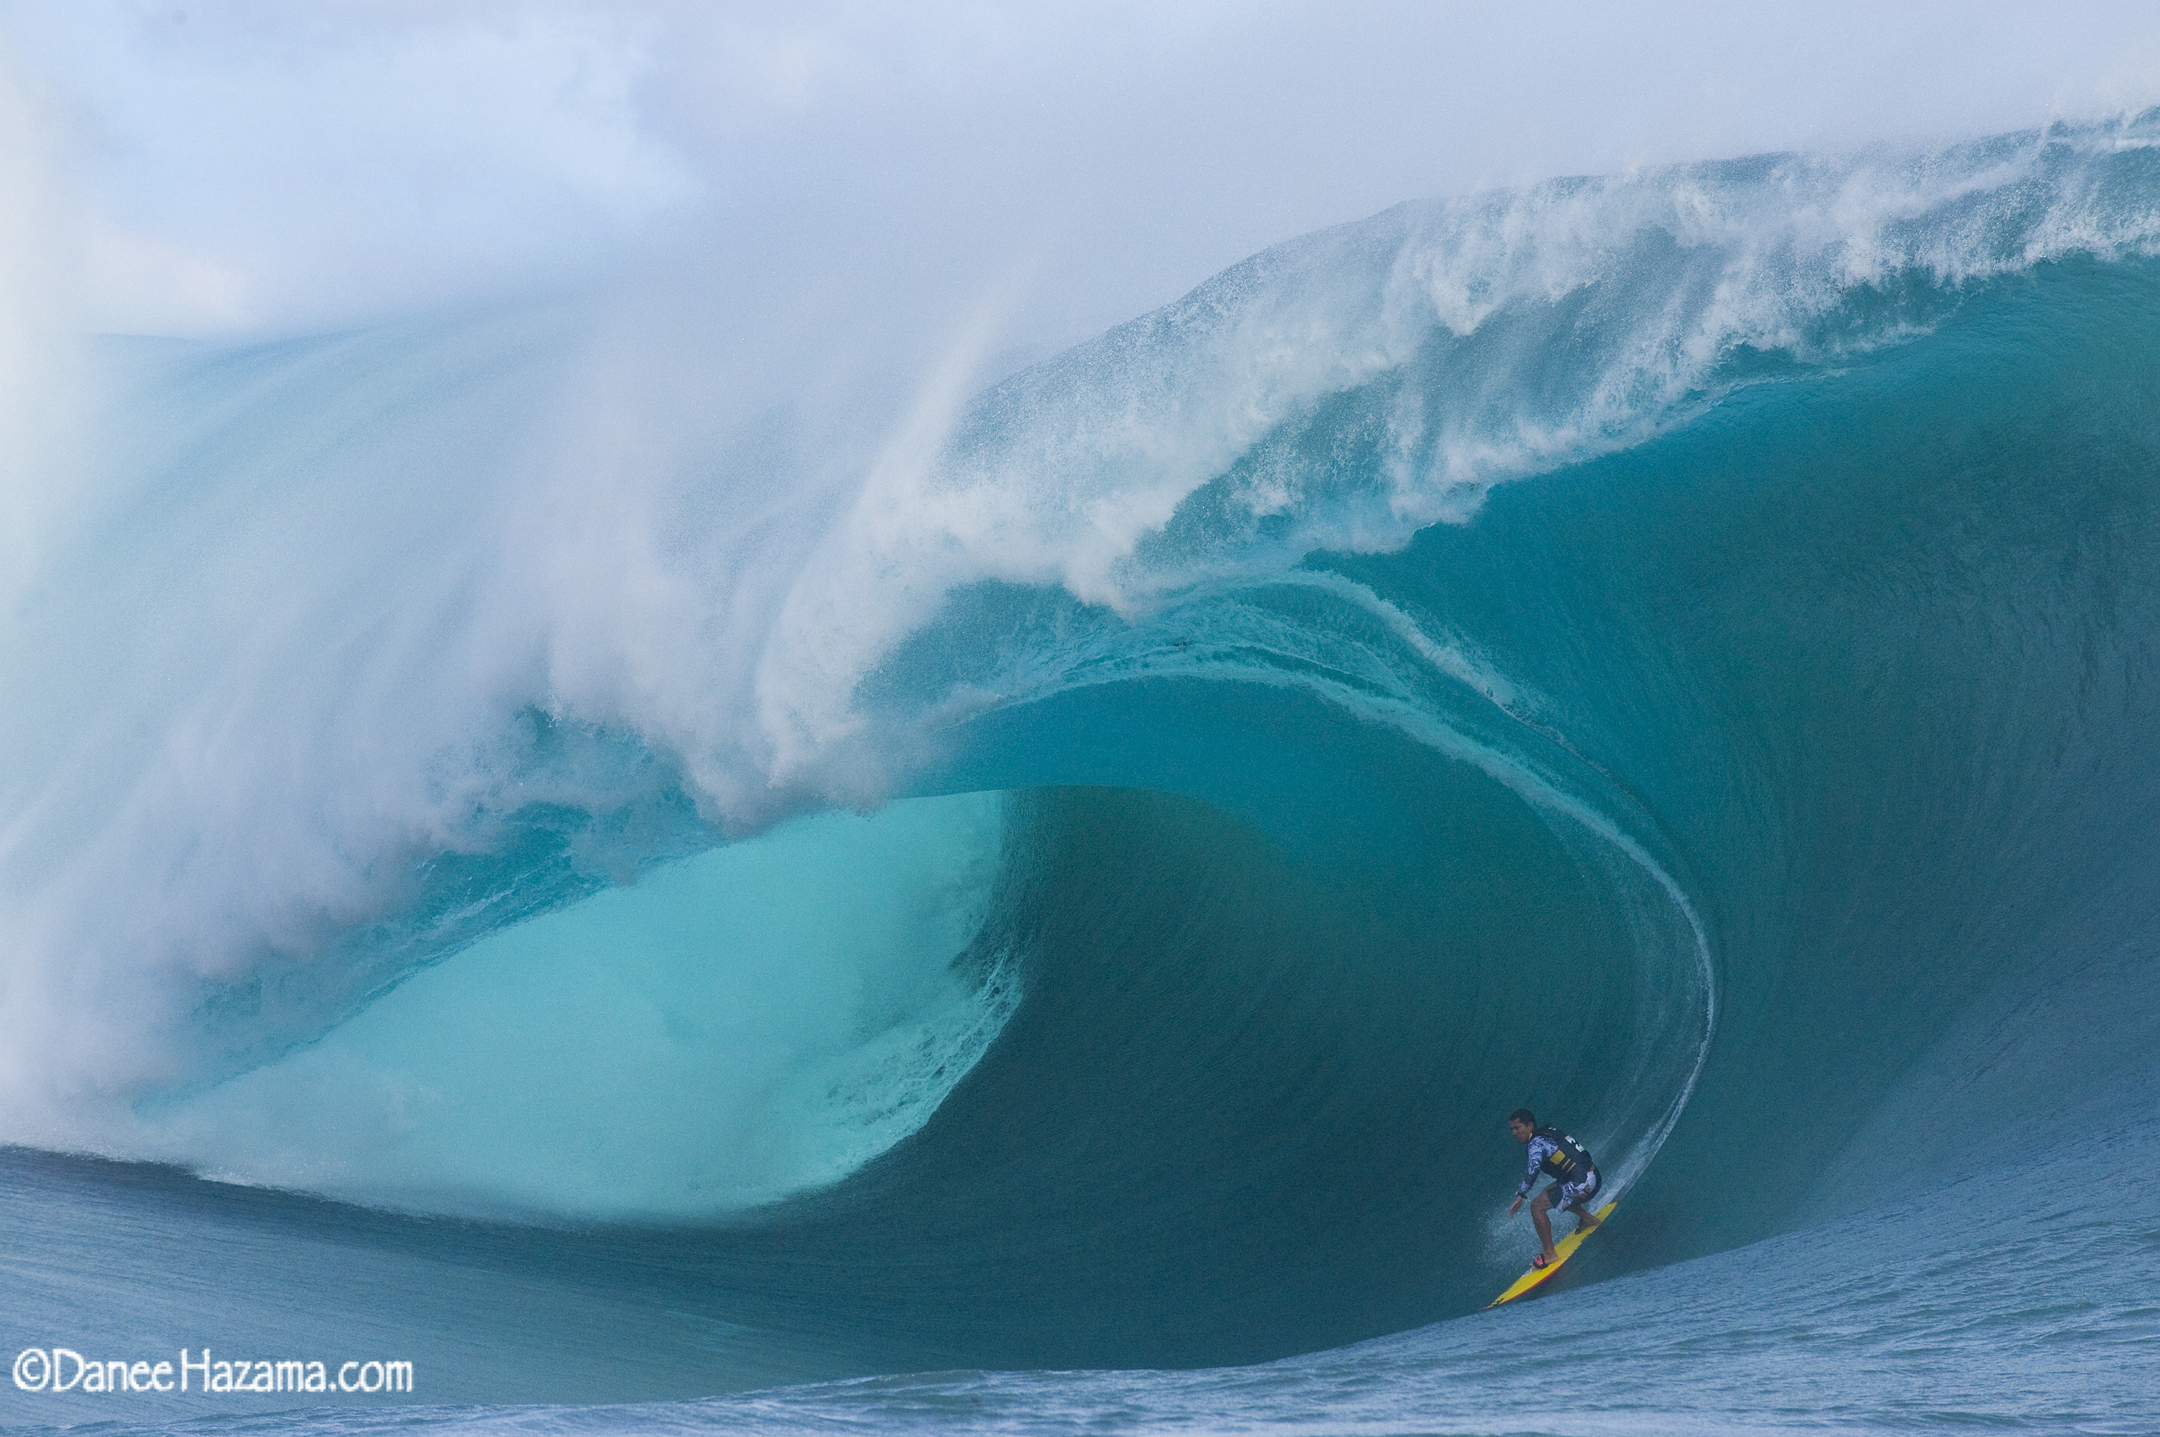 Manoa Drollet at Teahupoo, Tahiti